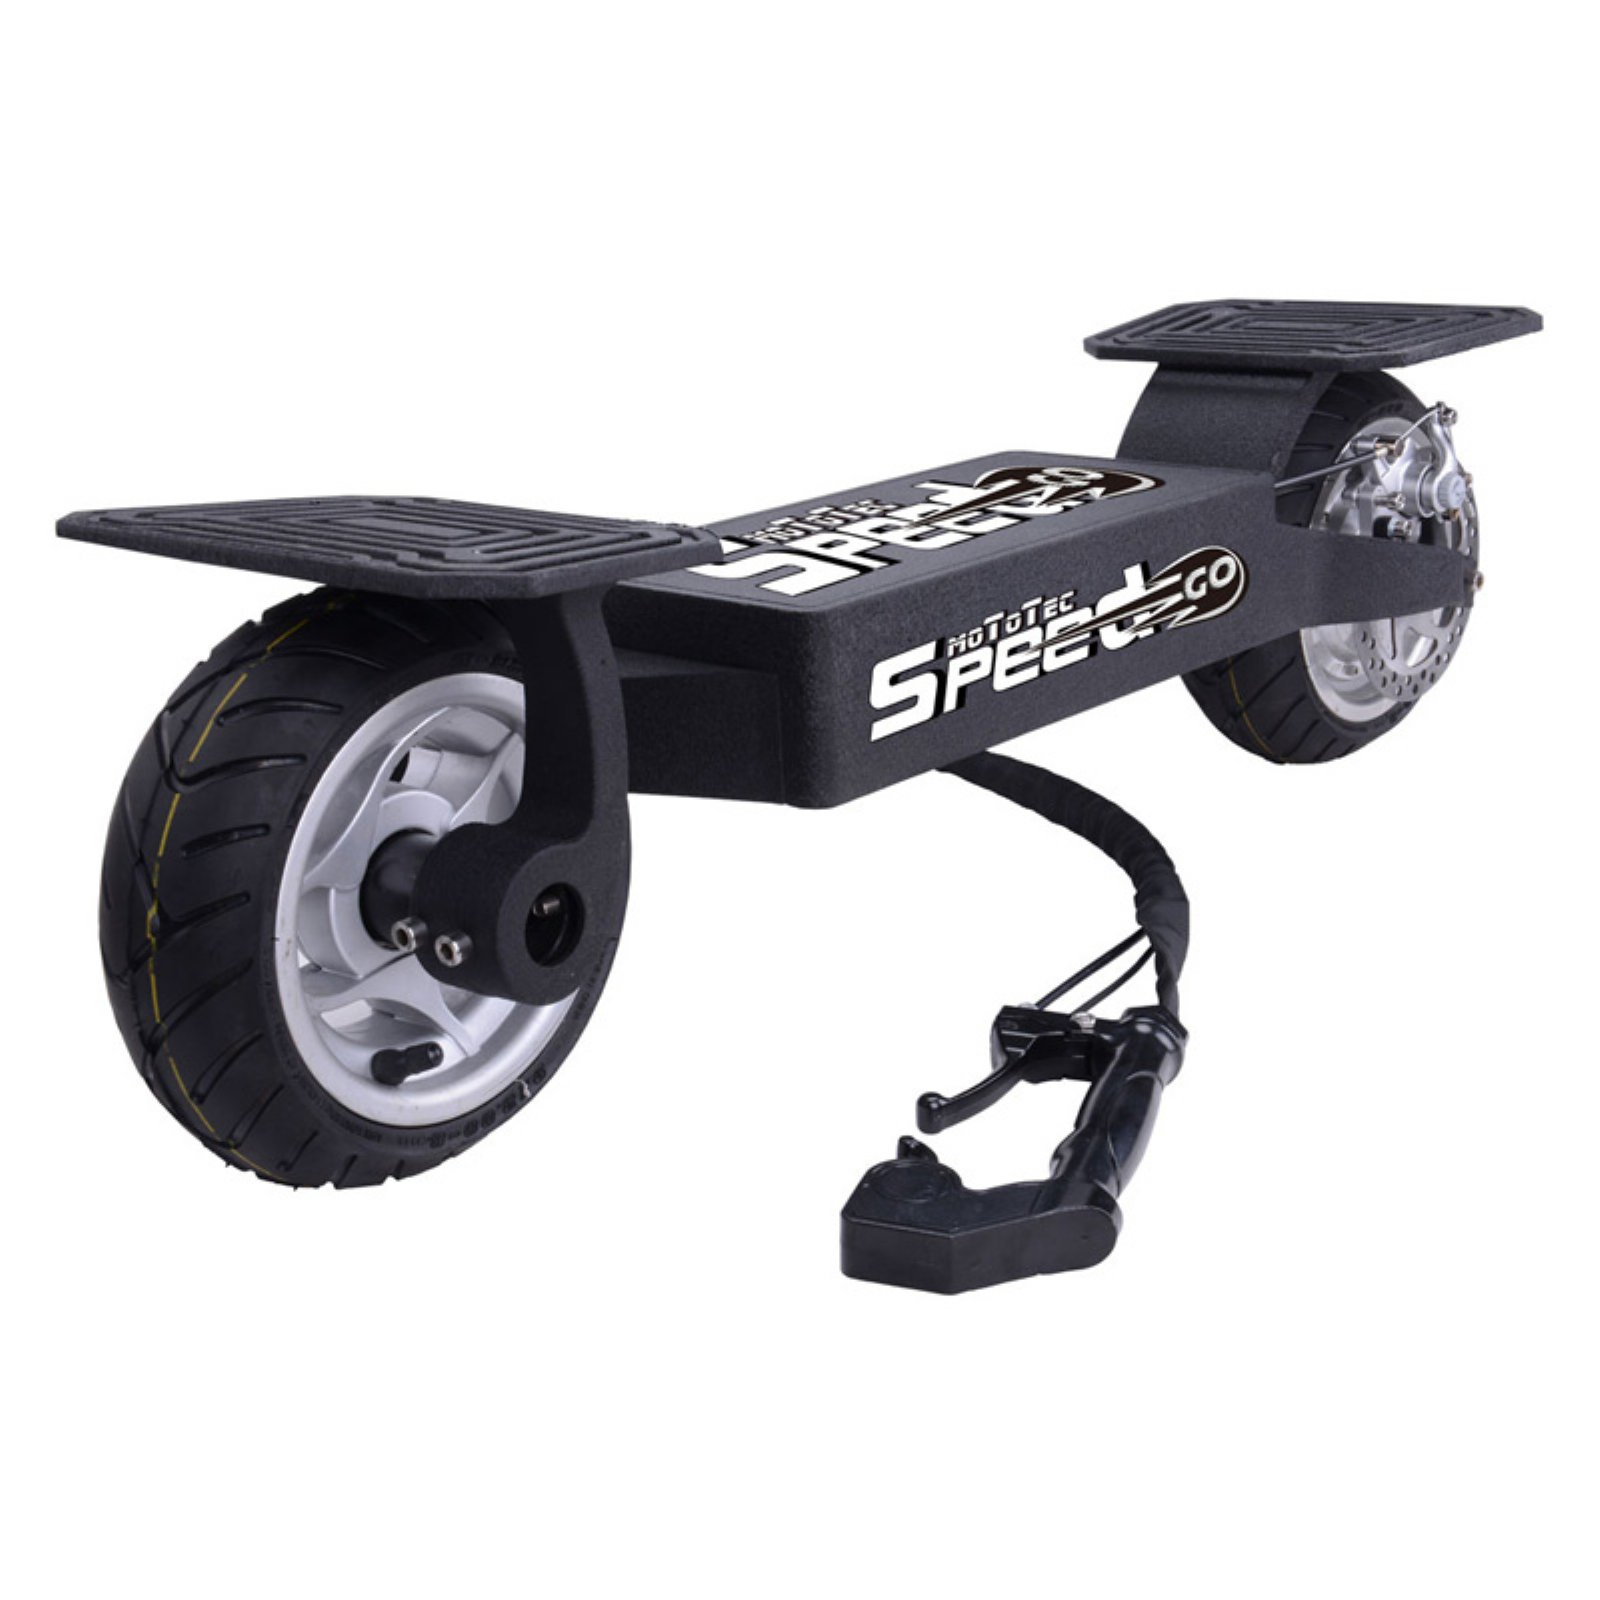 MotoTec 36 Volt Electric Speed Go Board, Black by MotoTec